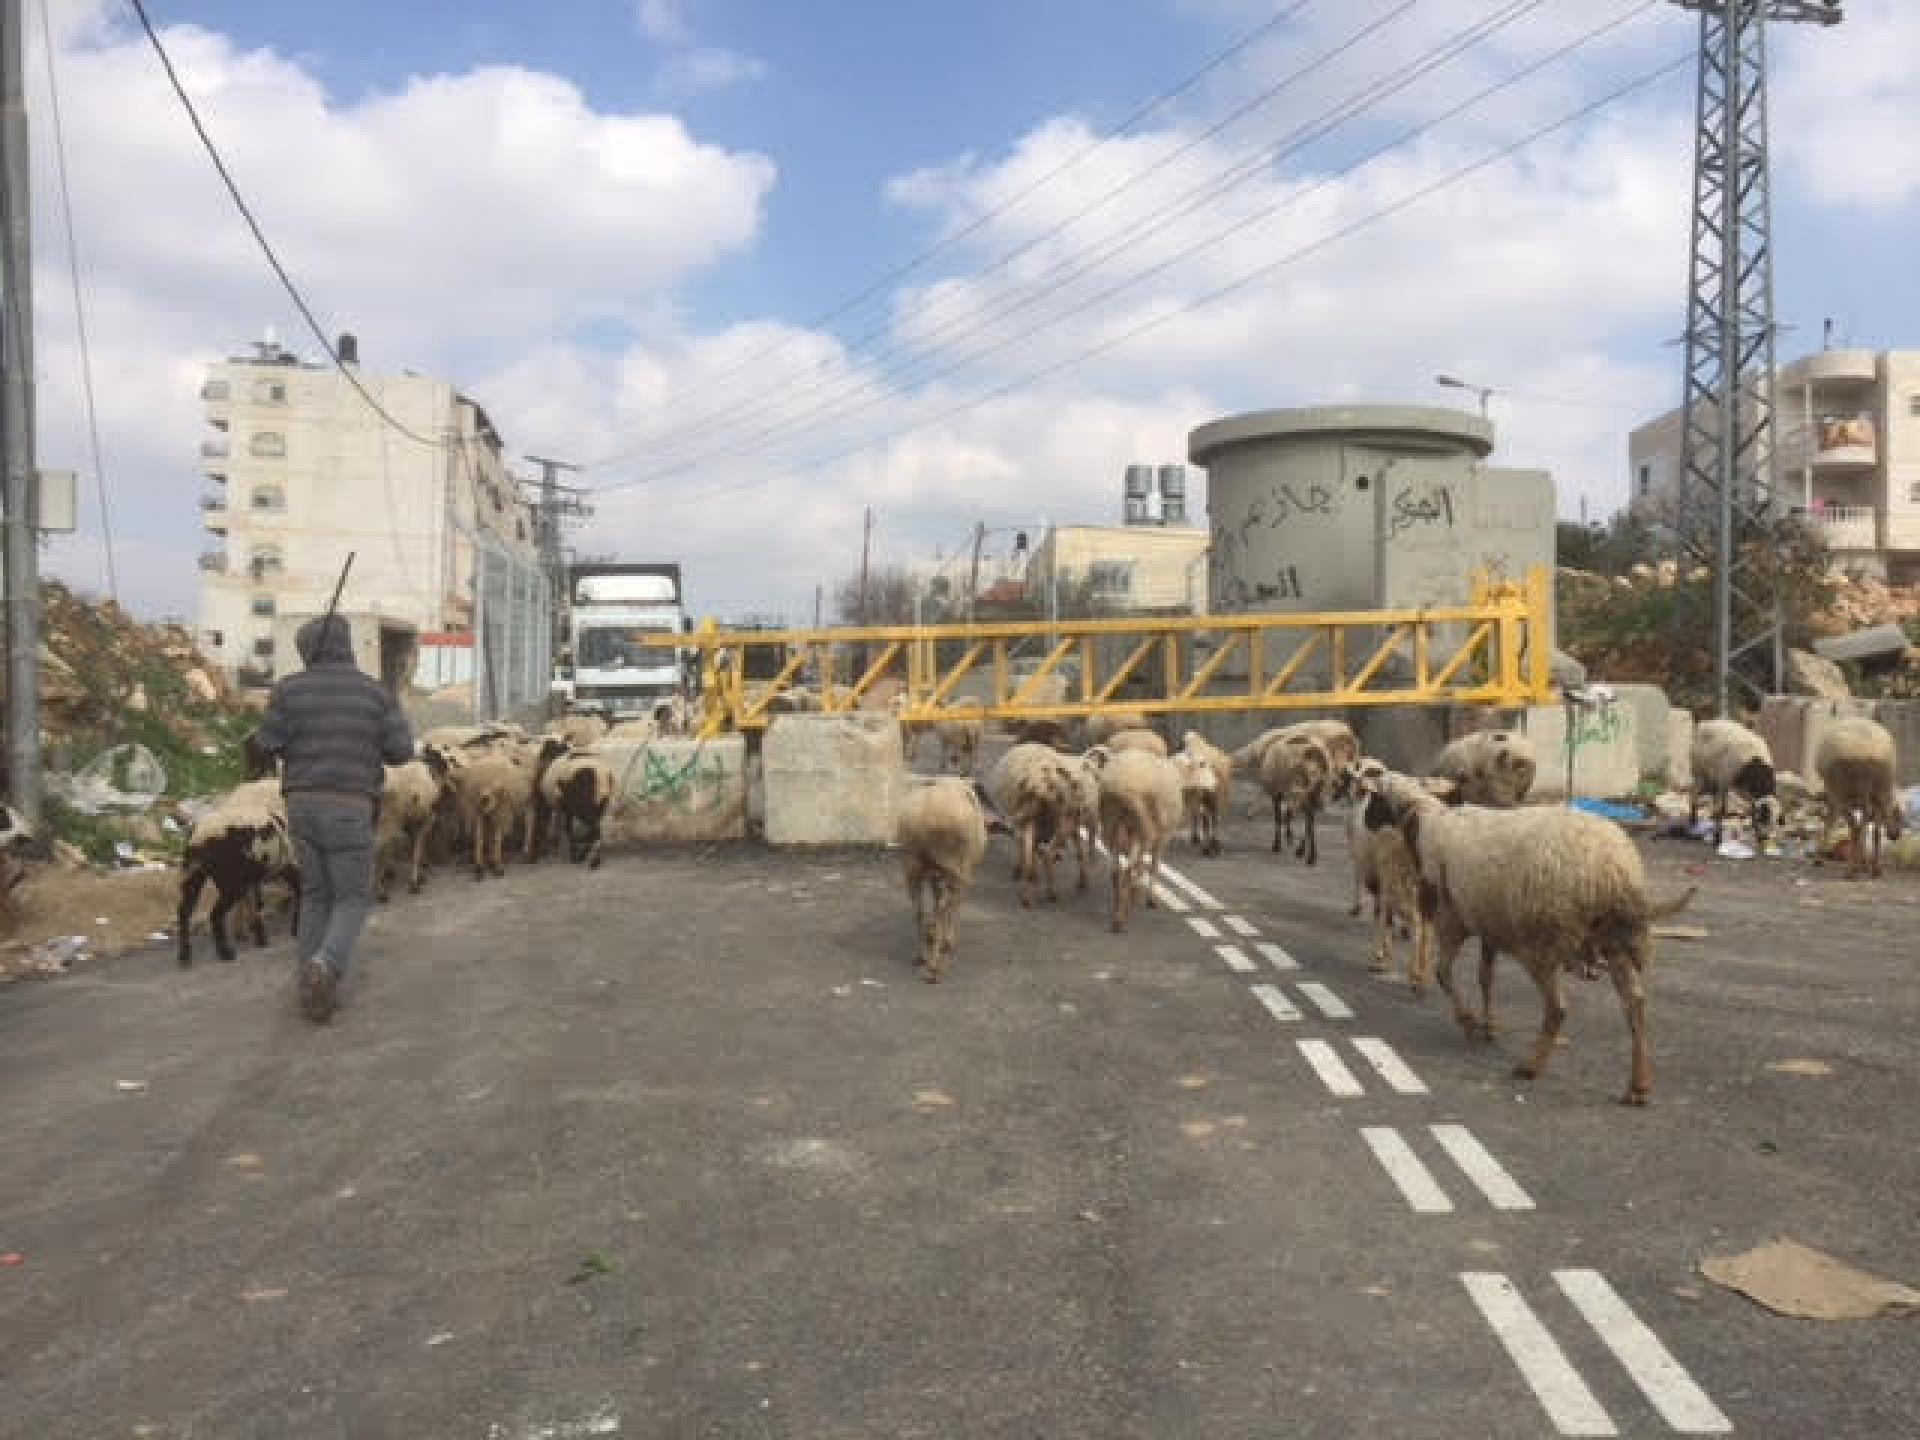 Sheep pass the checkpoint easily